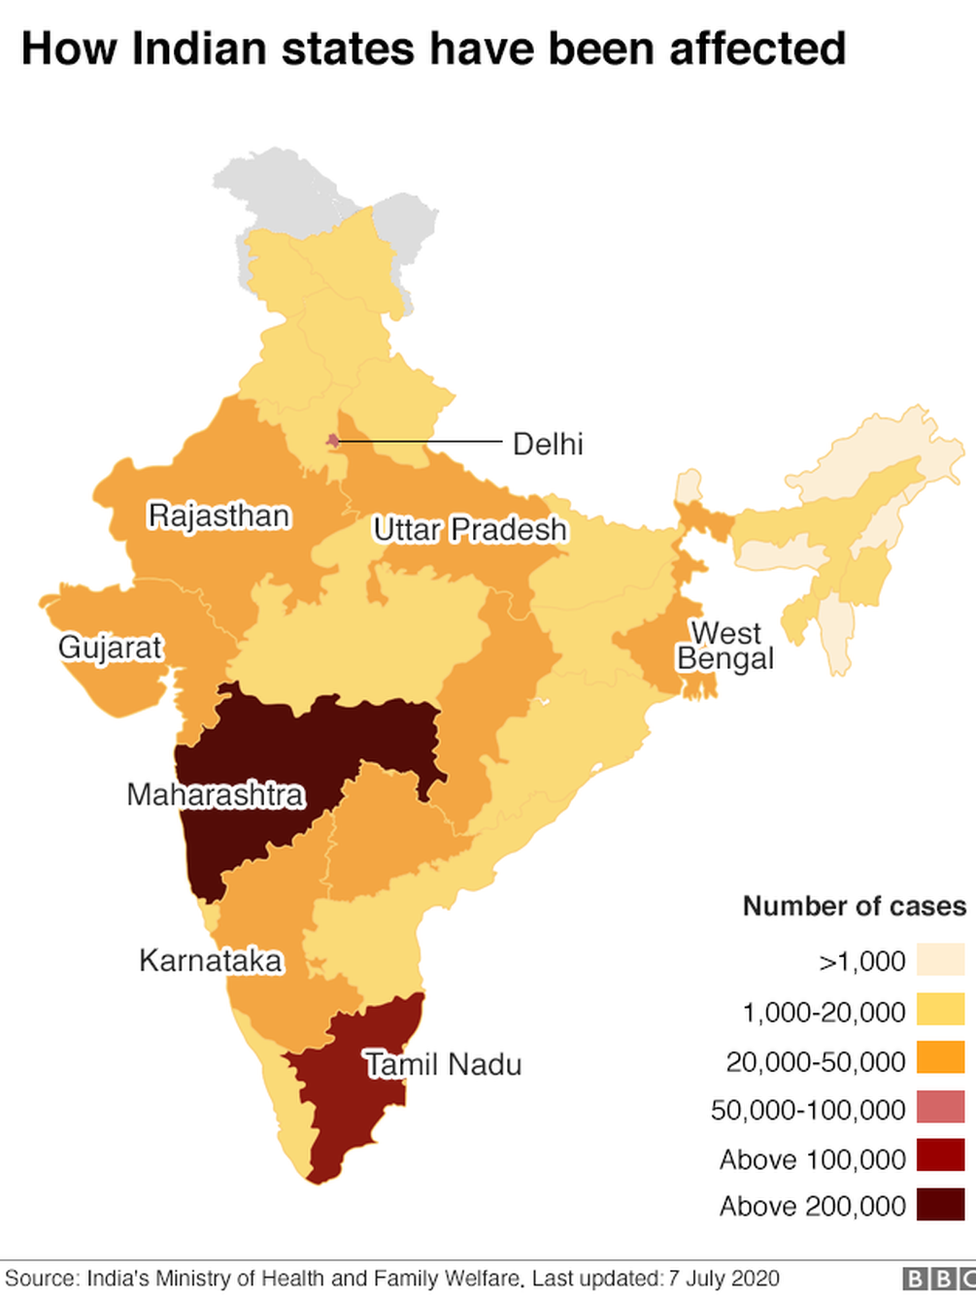 Map showing the spread of confirmed Covid-19 cases across India.